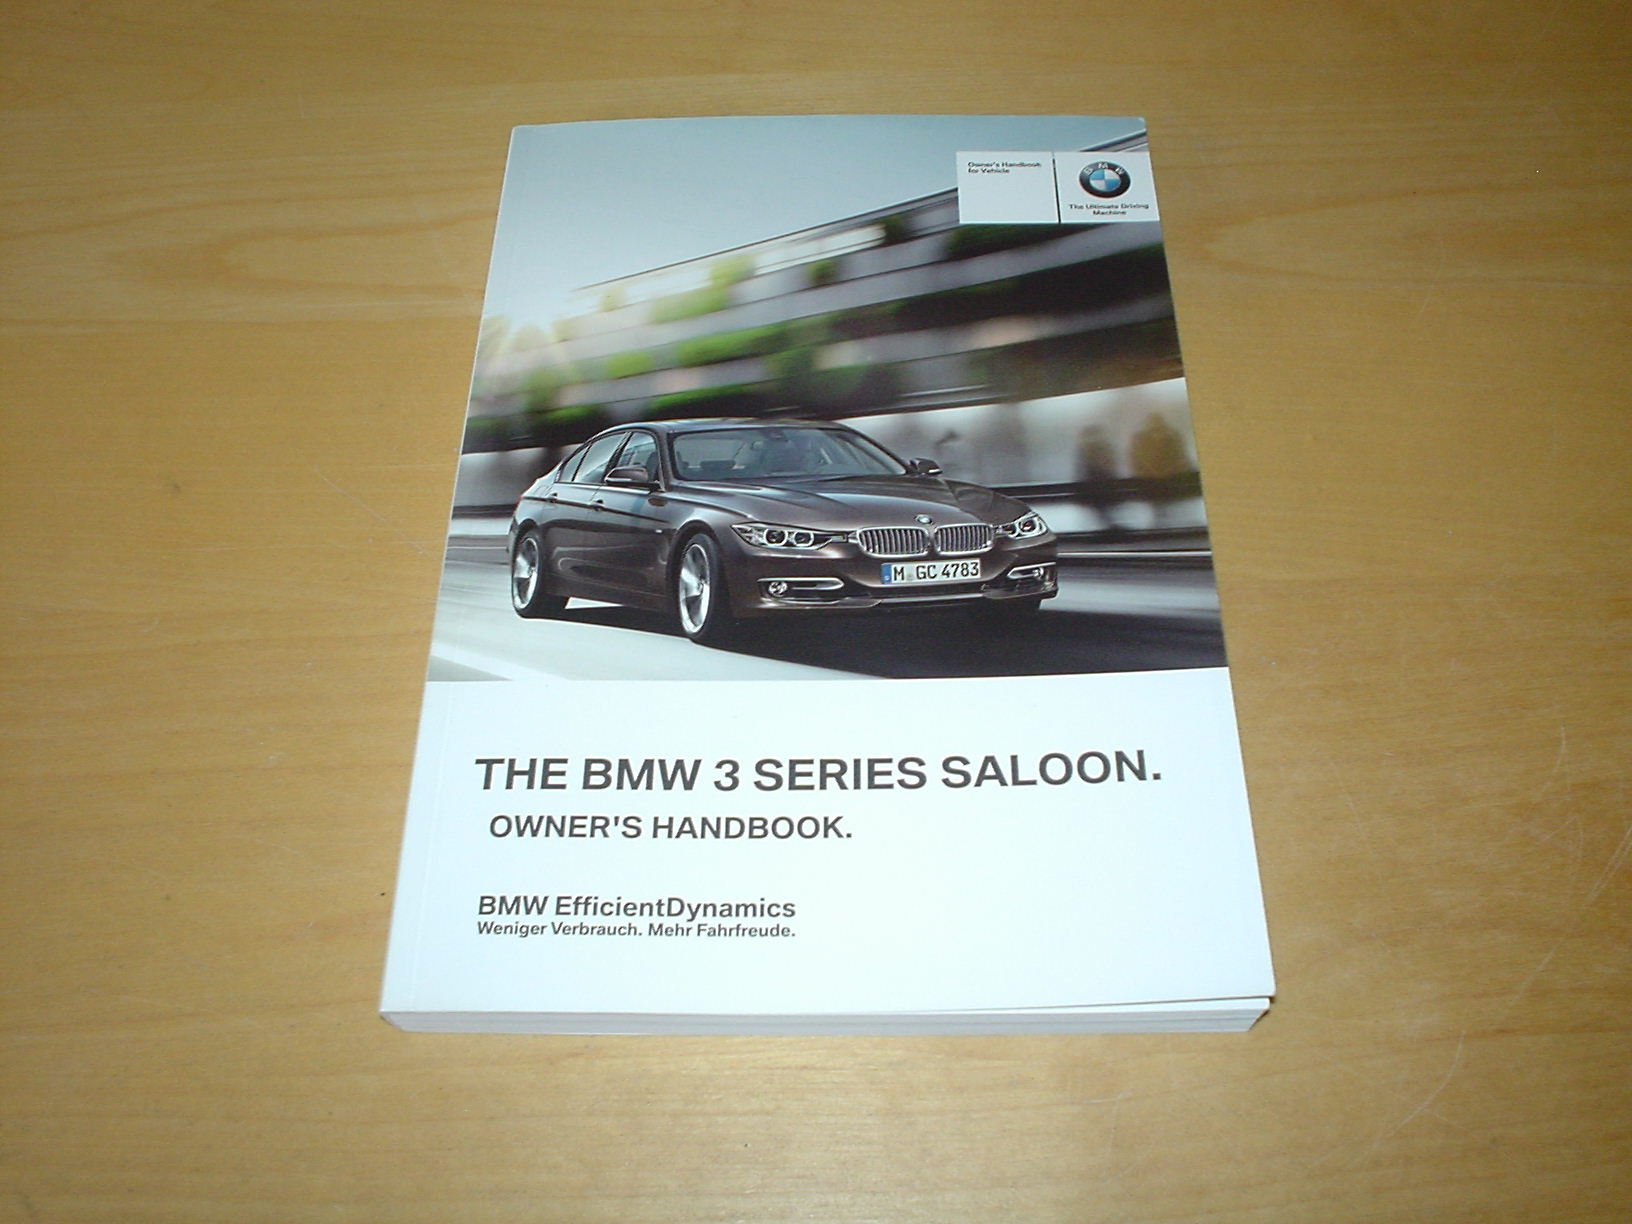 bmw 3 series f30 owners handbook 2010 2013 saloon 316i 320i rh amazon co uk BMW Warning Lights bmw f30 owners manual pdf uk